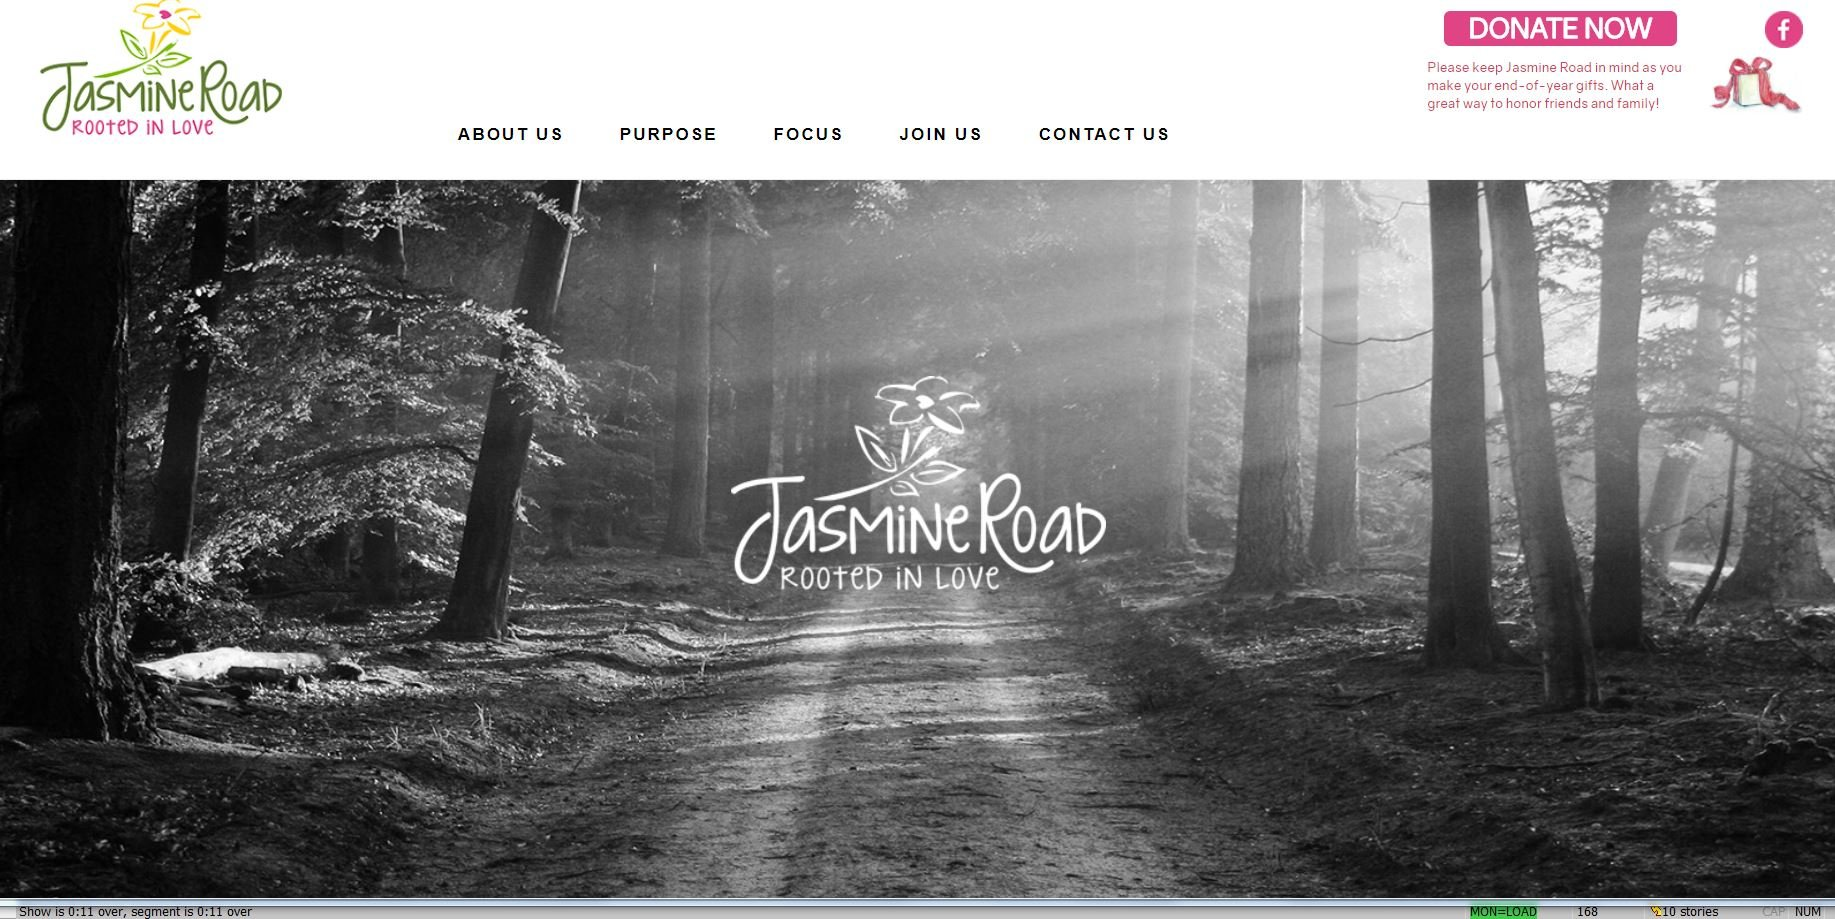 Jasmine Road is a future haven for women who've escaped sexual exploitation and human trafficking (Source: JasmineRoad.org).